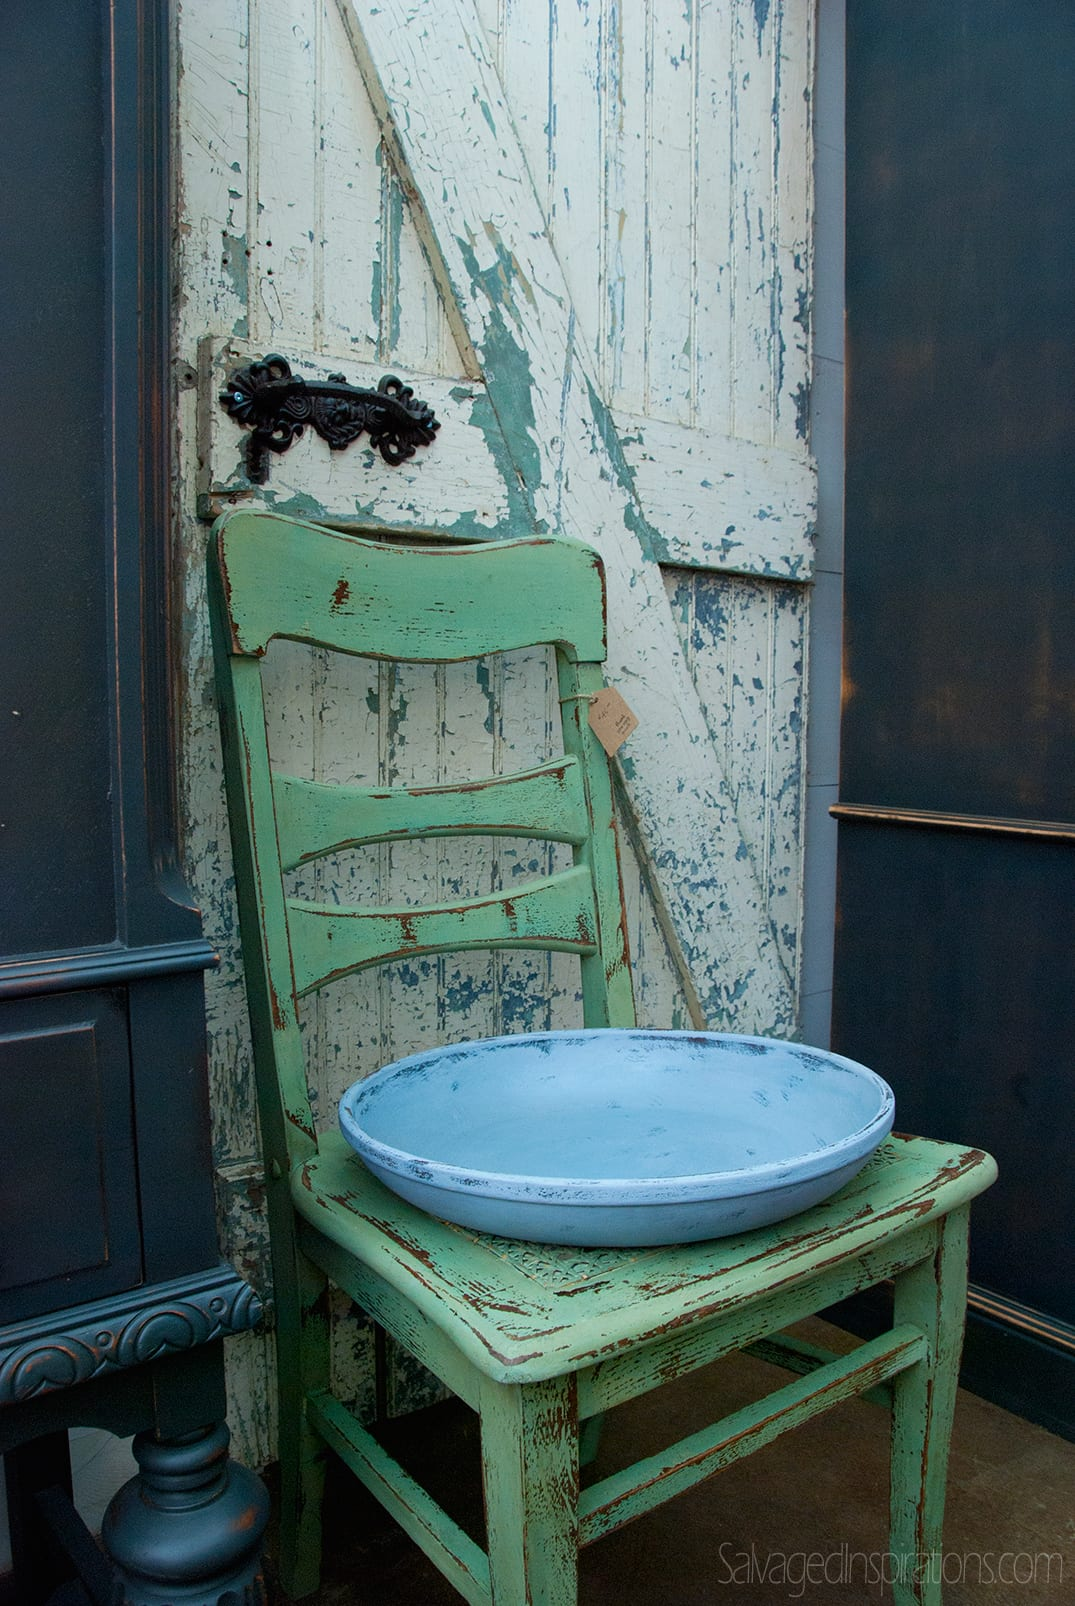 Pleasant-Pickins-Chair&Door